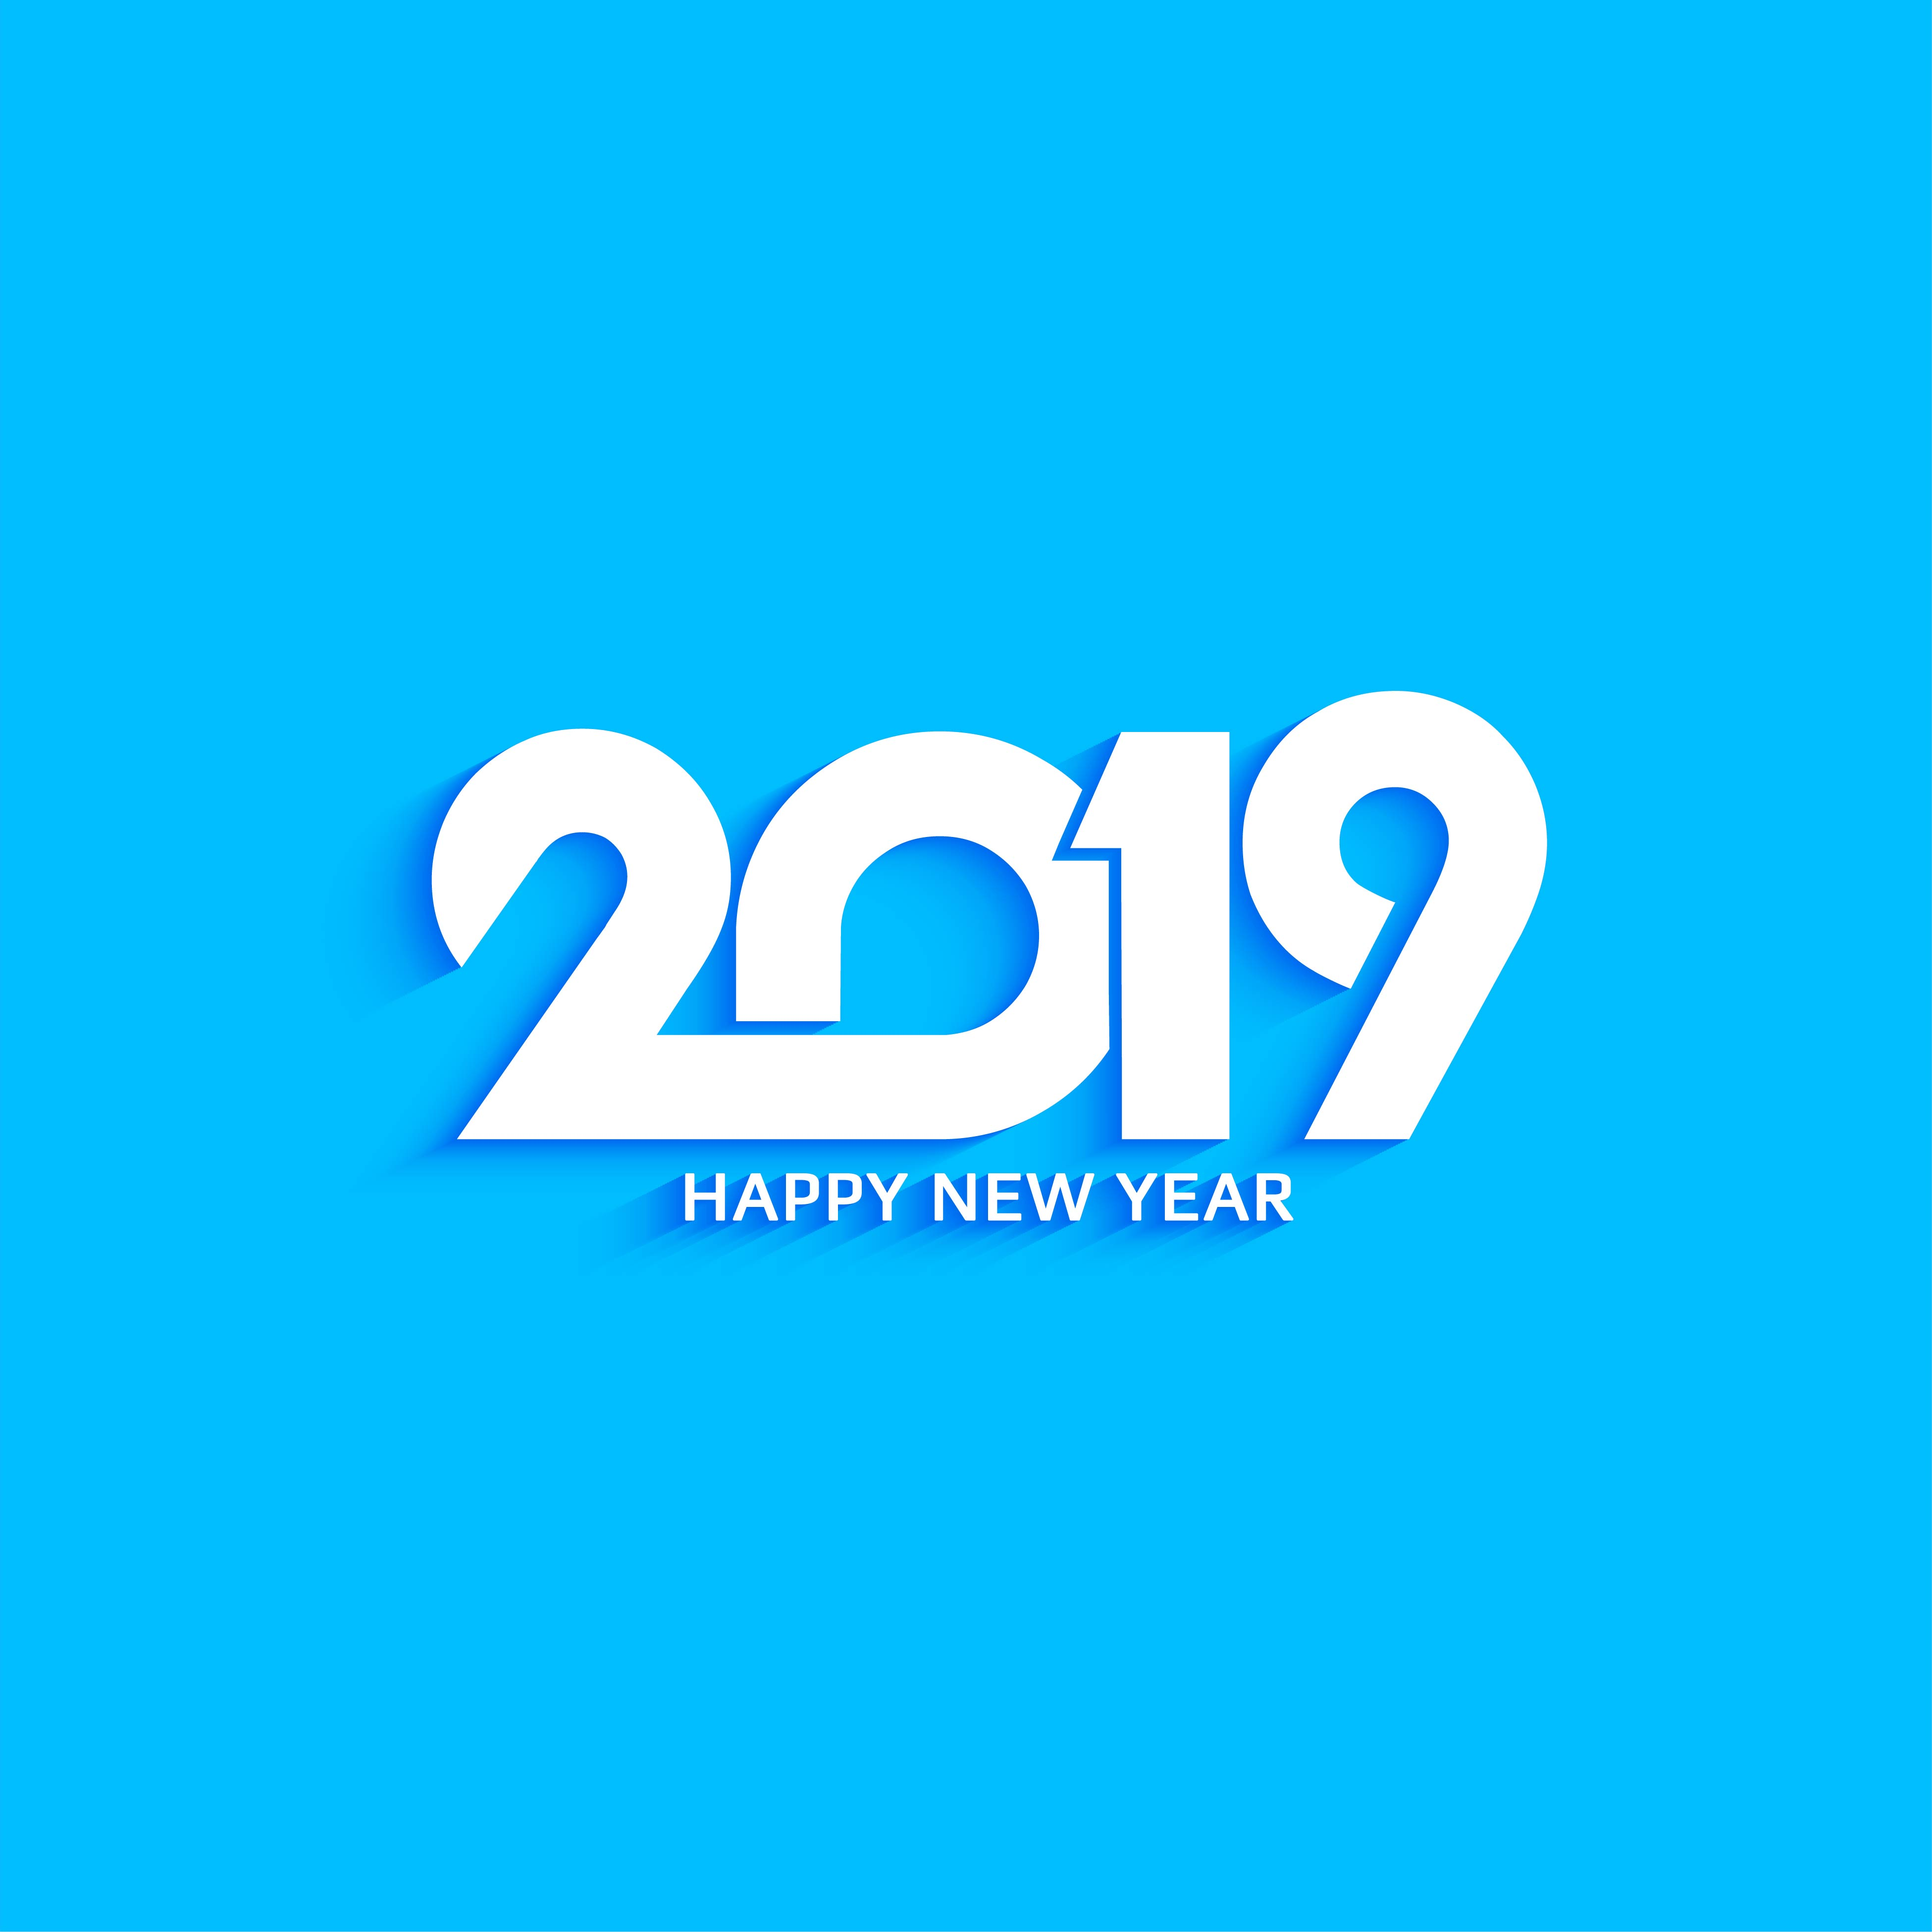 abstract new year 2019 decorative text design background download free vector art stock graphics images